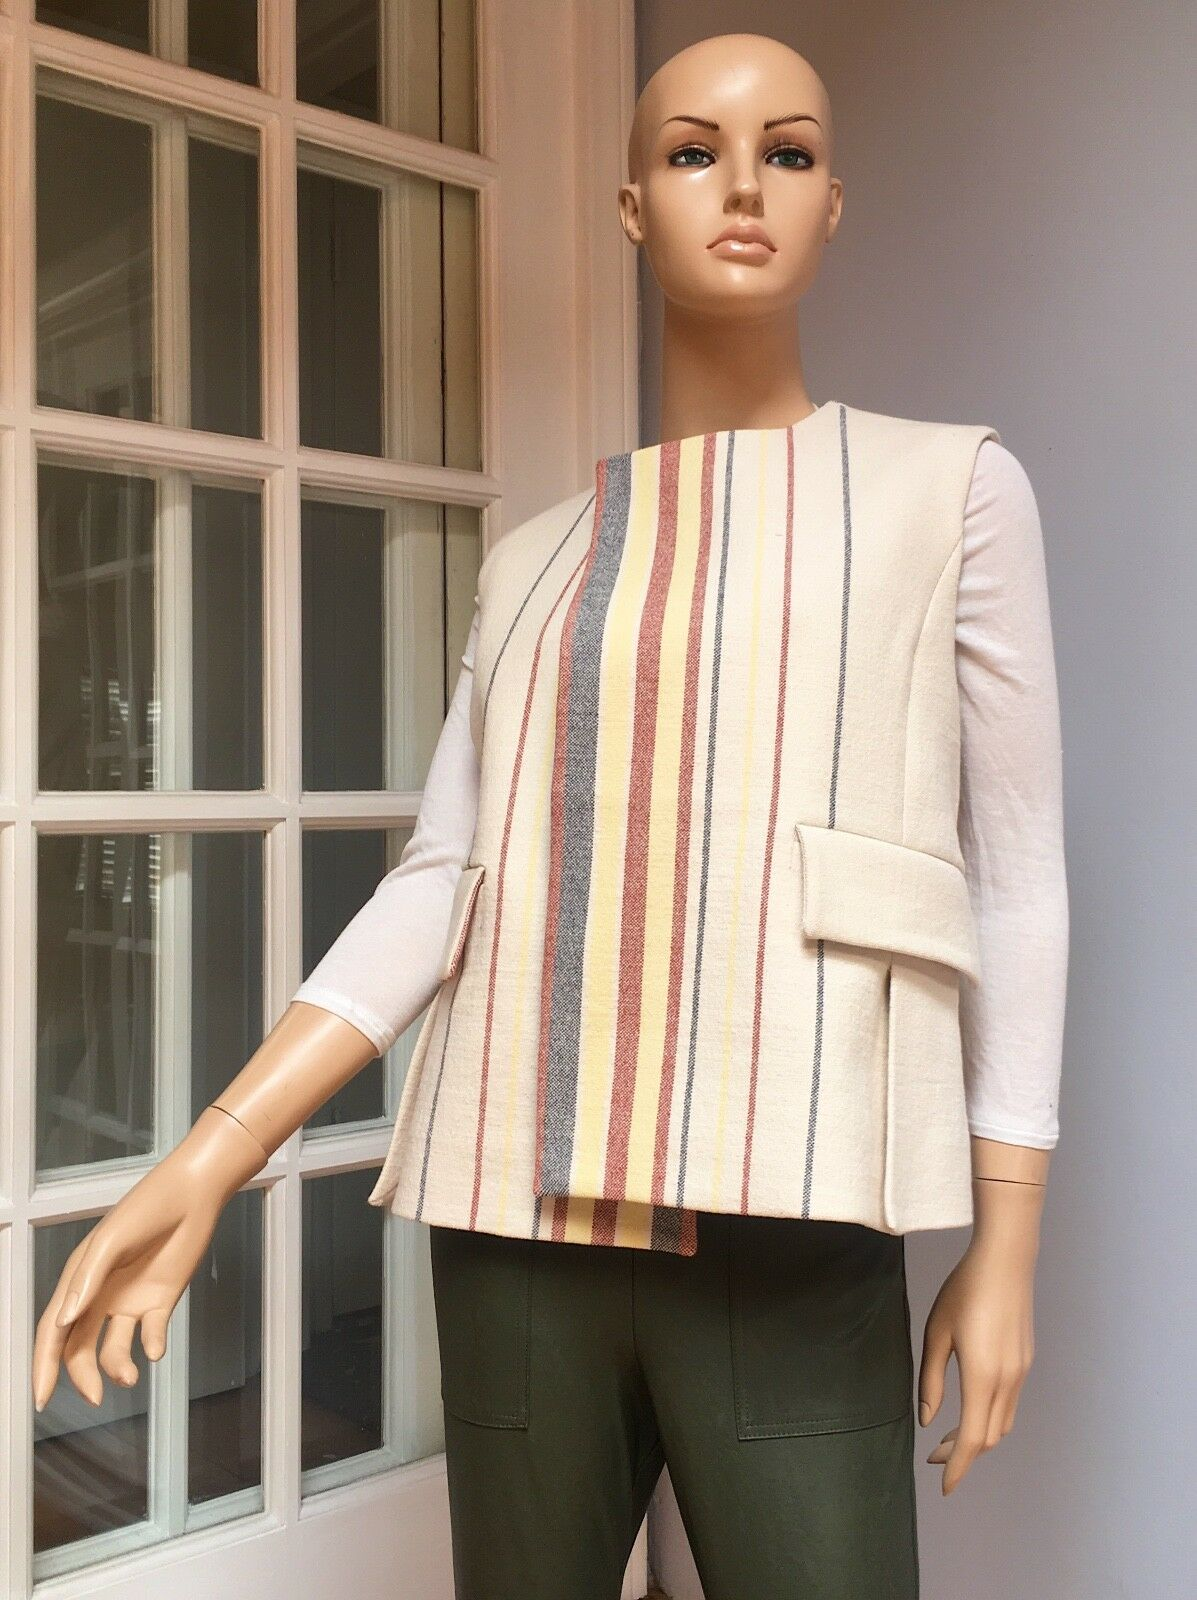 BCBG Maxazria Cotton Poplin Blend Striped Vest, Sample, One Size (Fits S M)